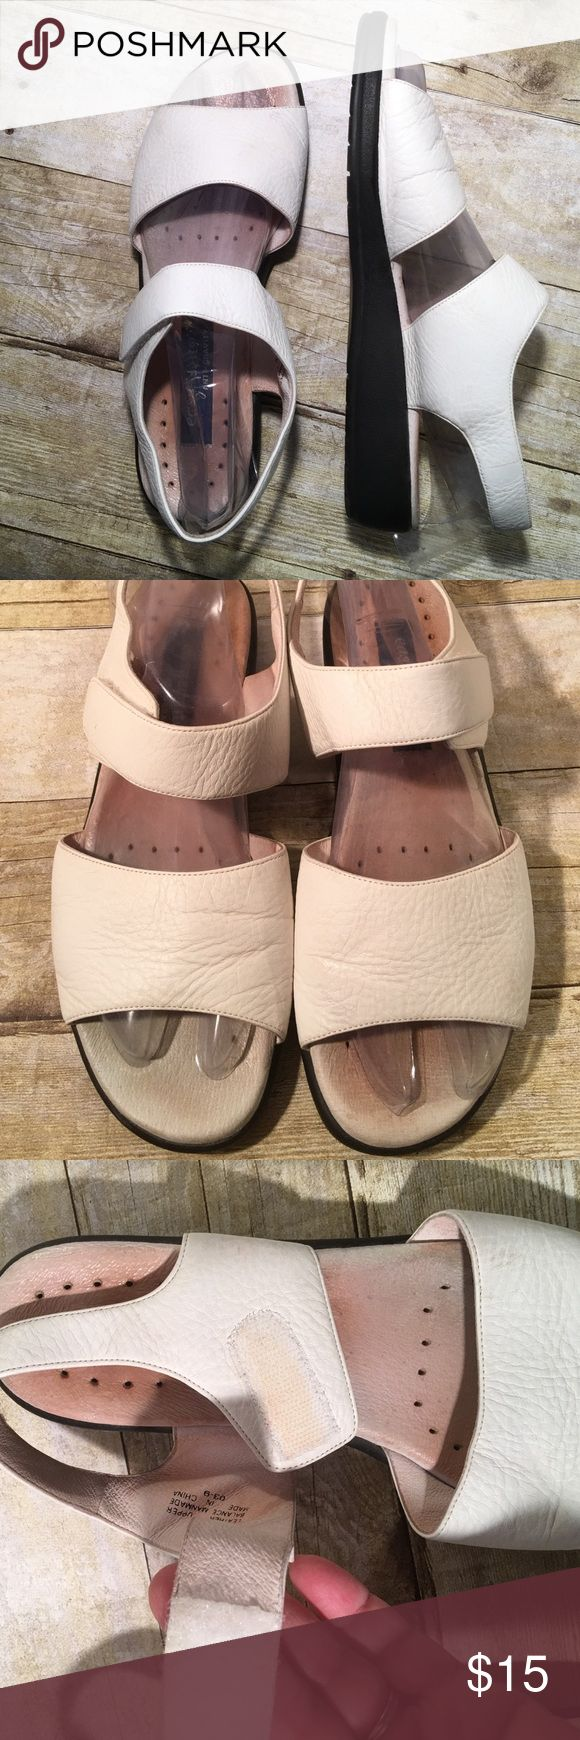 """Easy Spirit White Velcro Strap Sandal 9 1/2N 1 1/2"""" wedge. Velcro Straps. Leather uppers. Instep is a little soiled but the shoe itself is in very good condition and comes from my non smoking home Easy Spirit Shoes Sandals"""